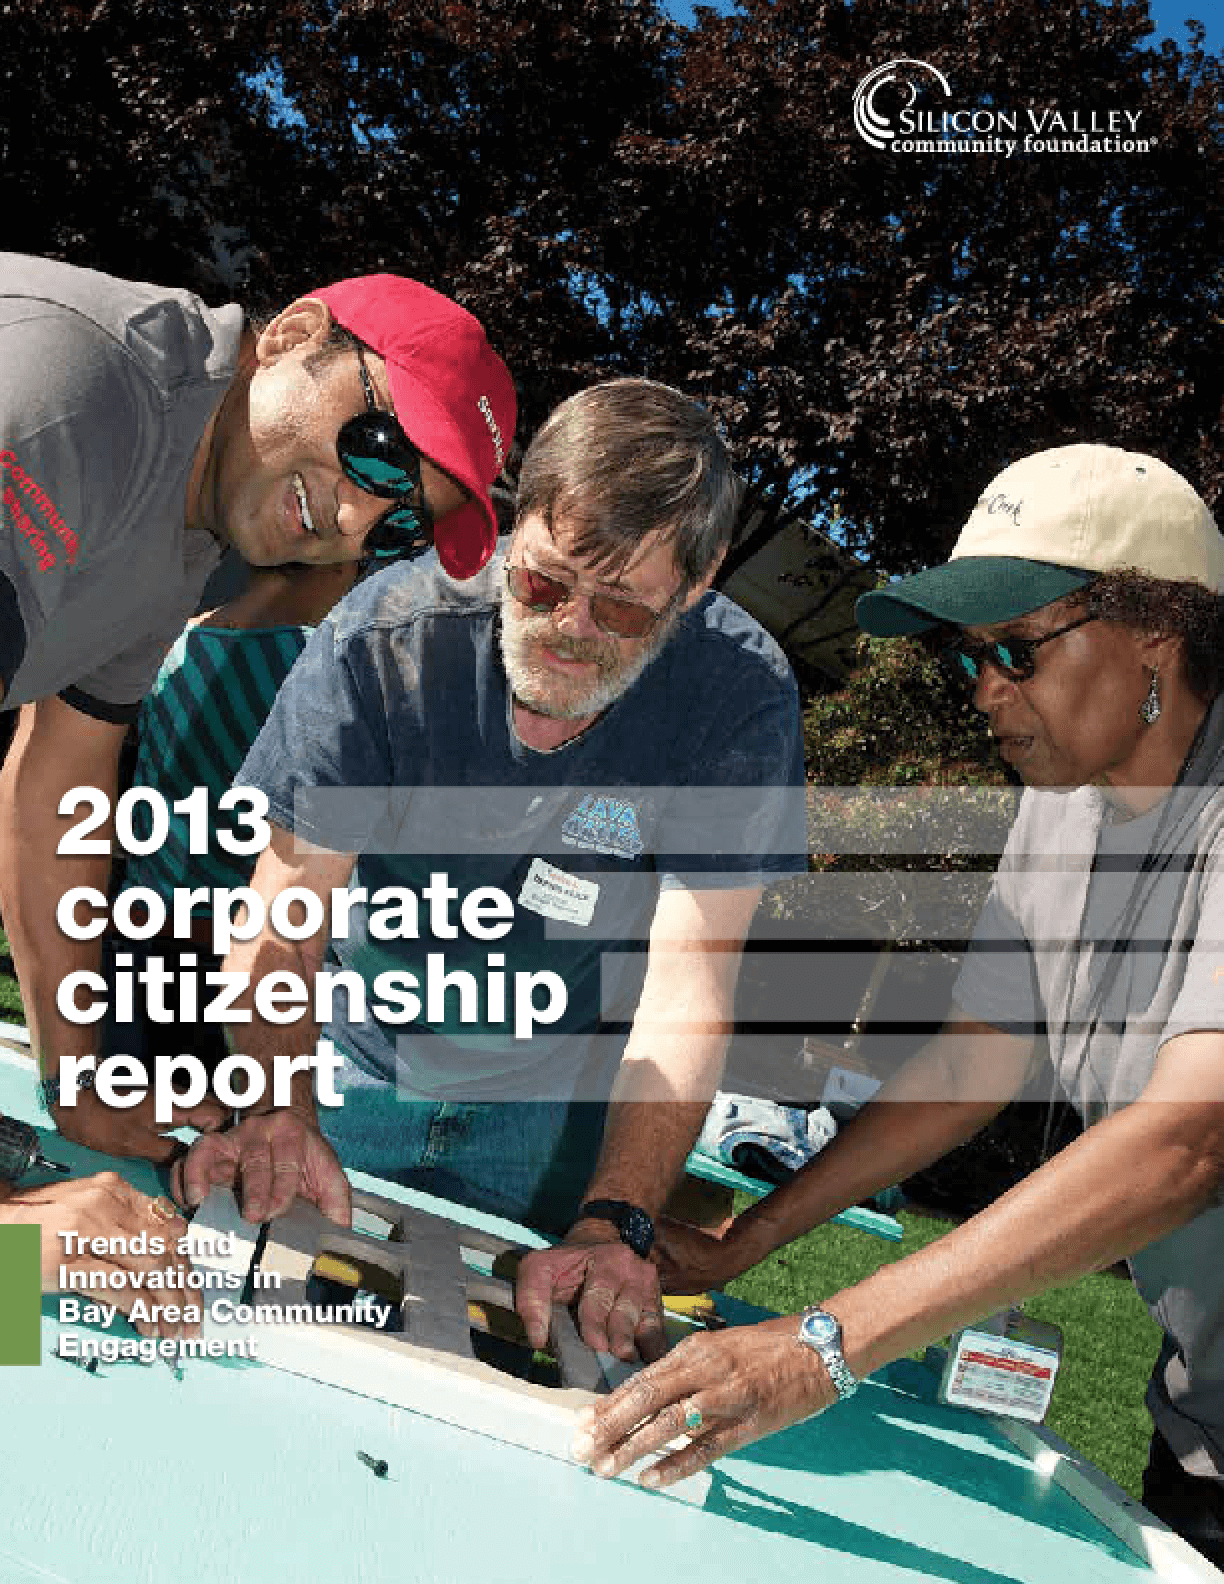 2013 Corporate Citizenship Report: Trends and Innovations in Bay Area Community Engagement